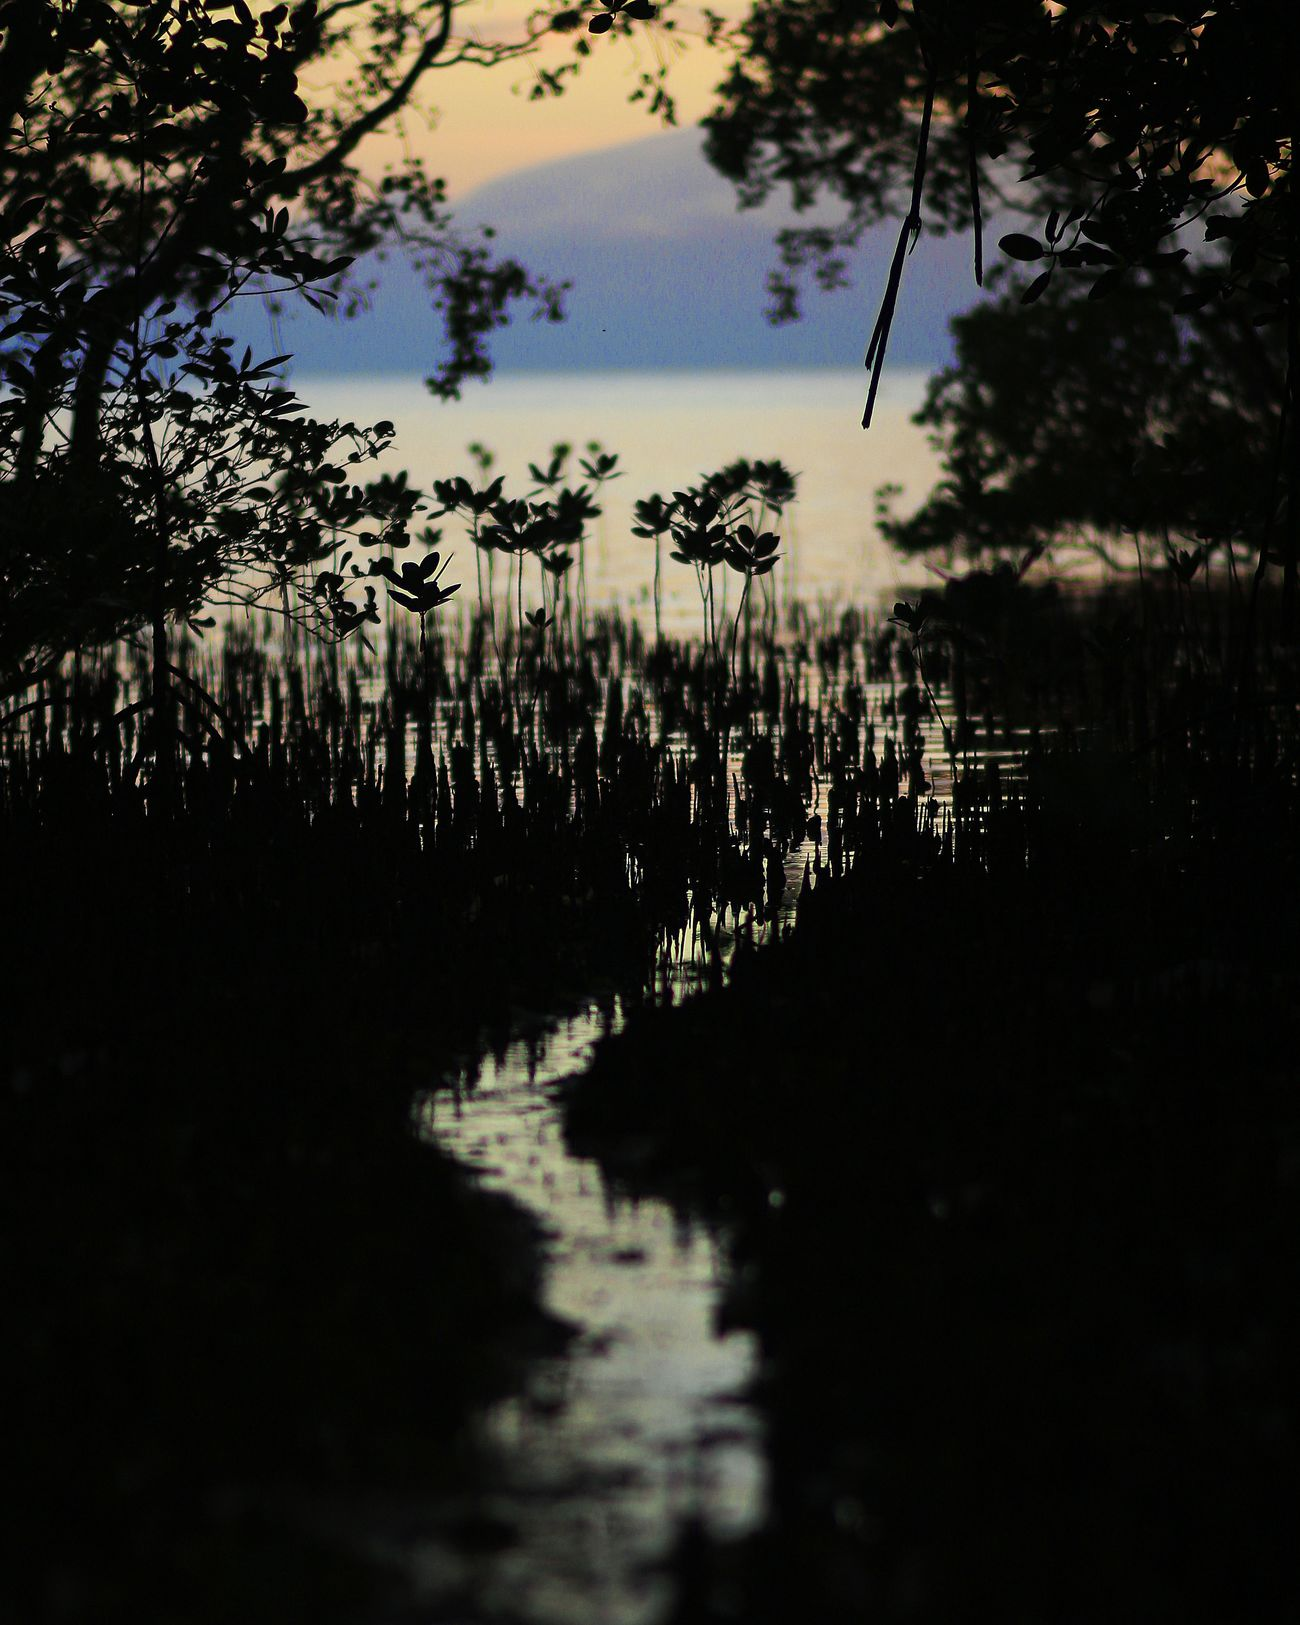 Beachphotography Mangroves Beauty In Nature Nature Silhouette Shadows Sea